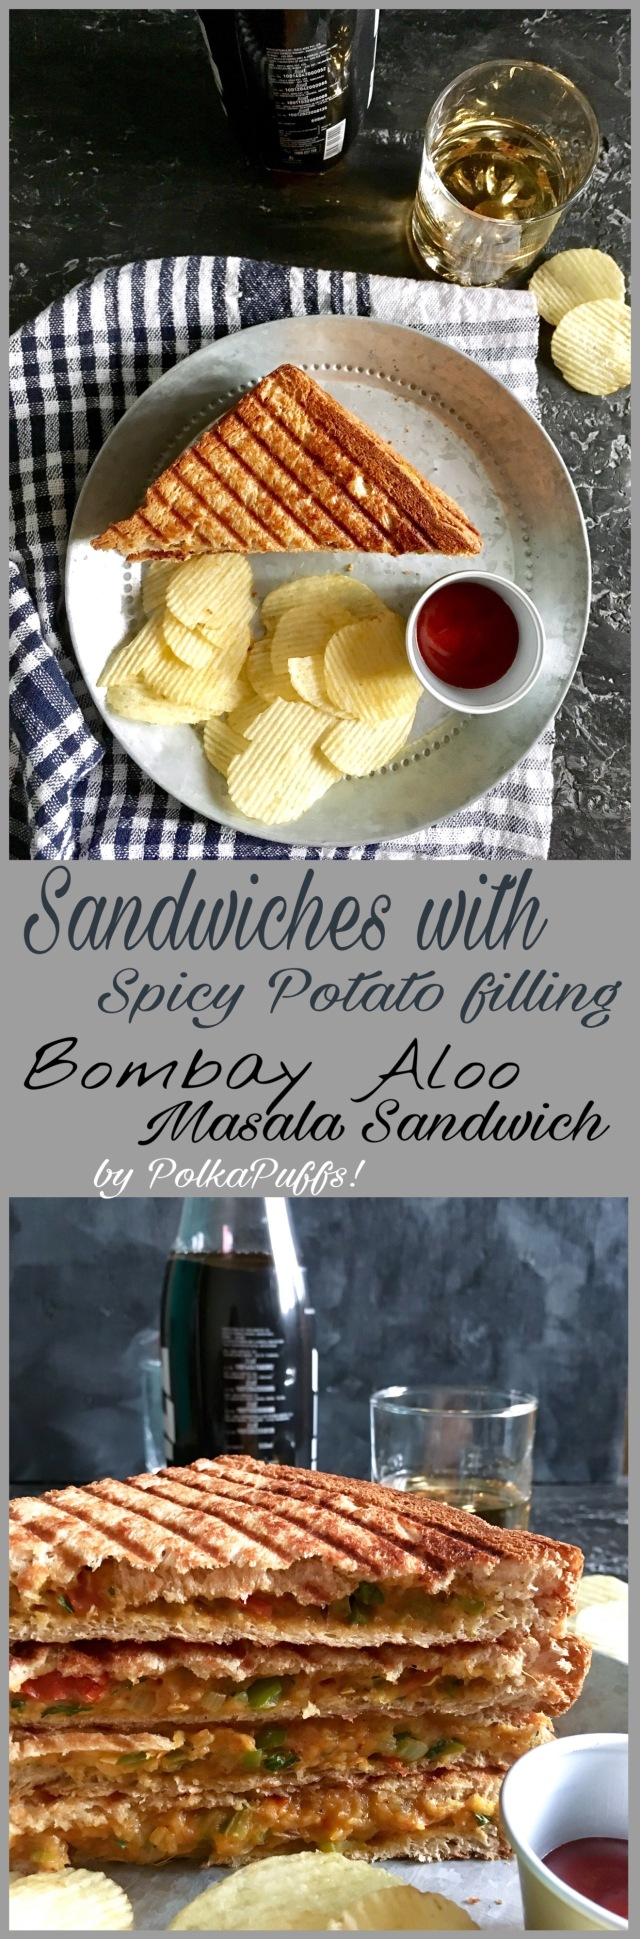 Sandwiches with Spicy Potato fillng | Bombay Masala Aloo Sandwich | PolkaPuffs